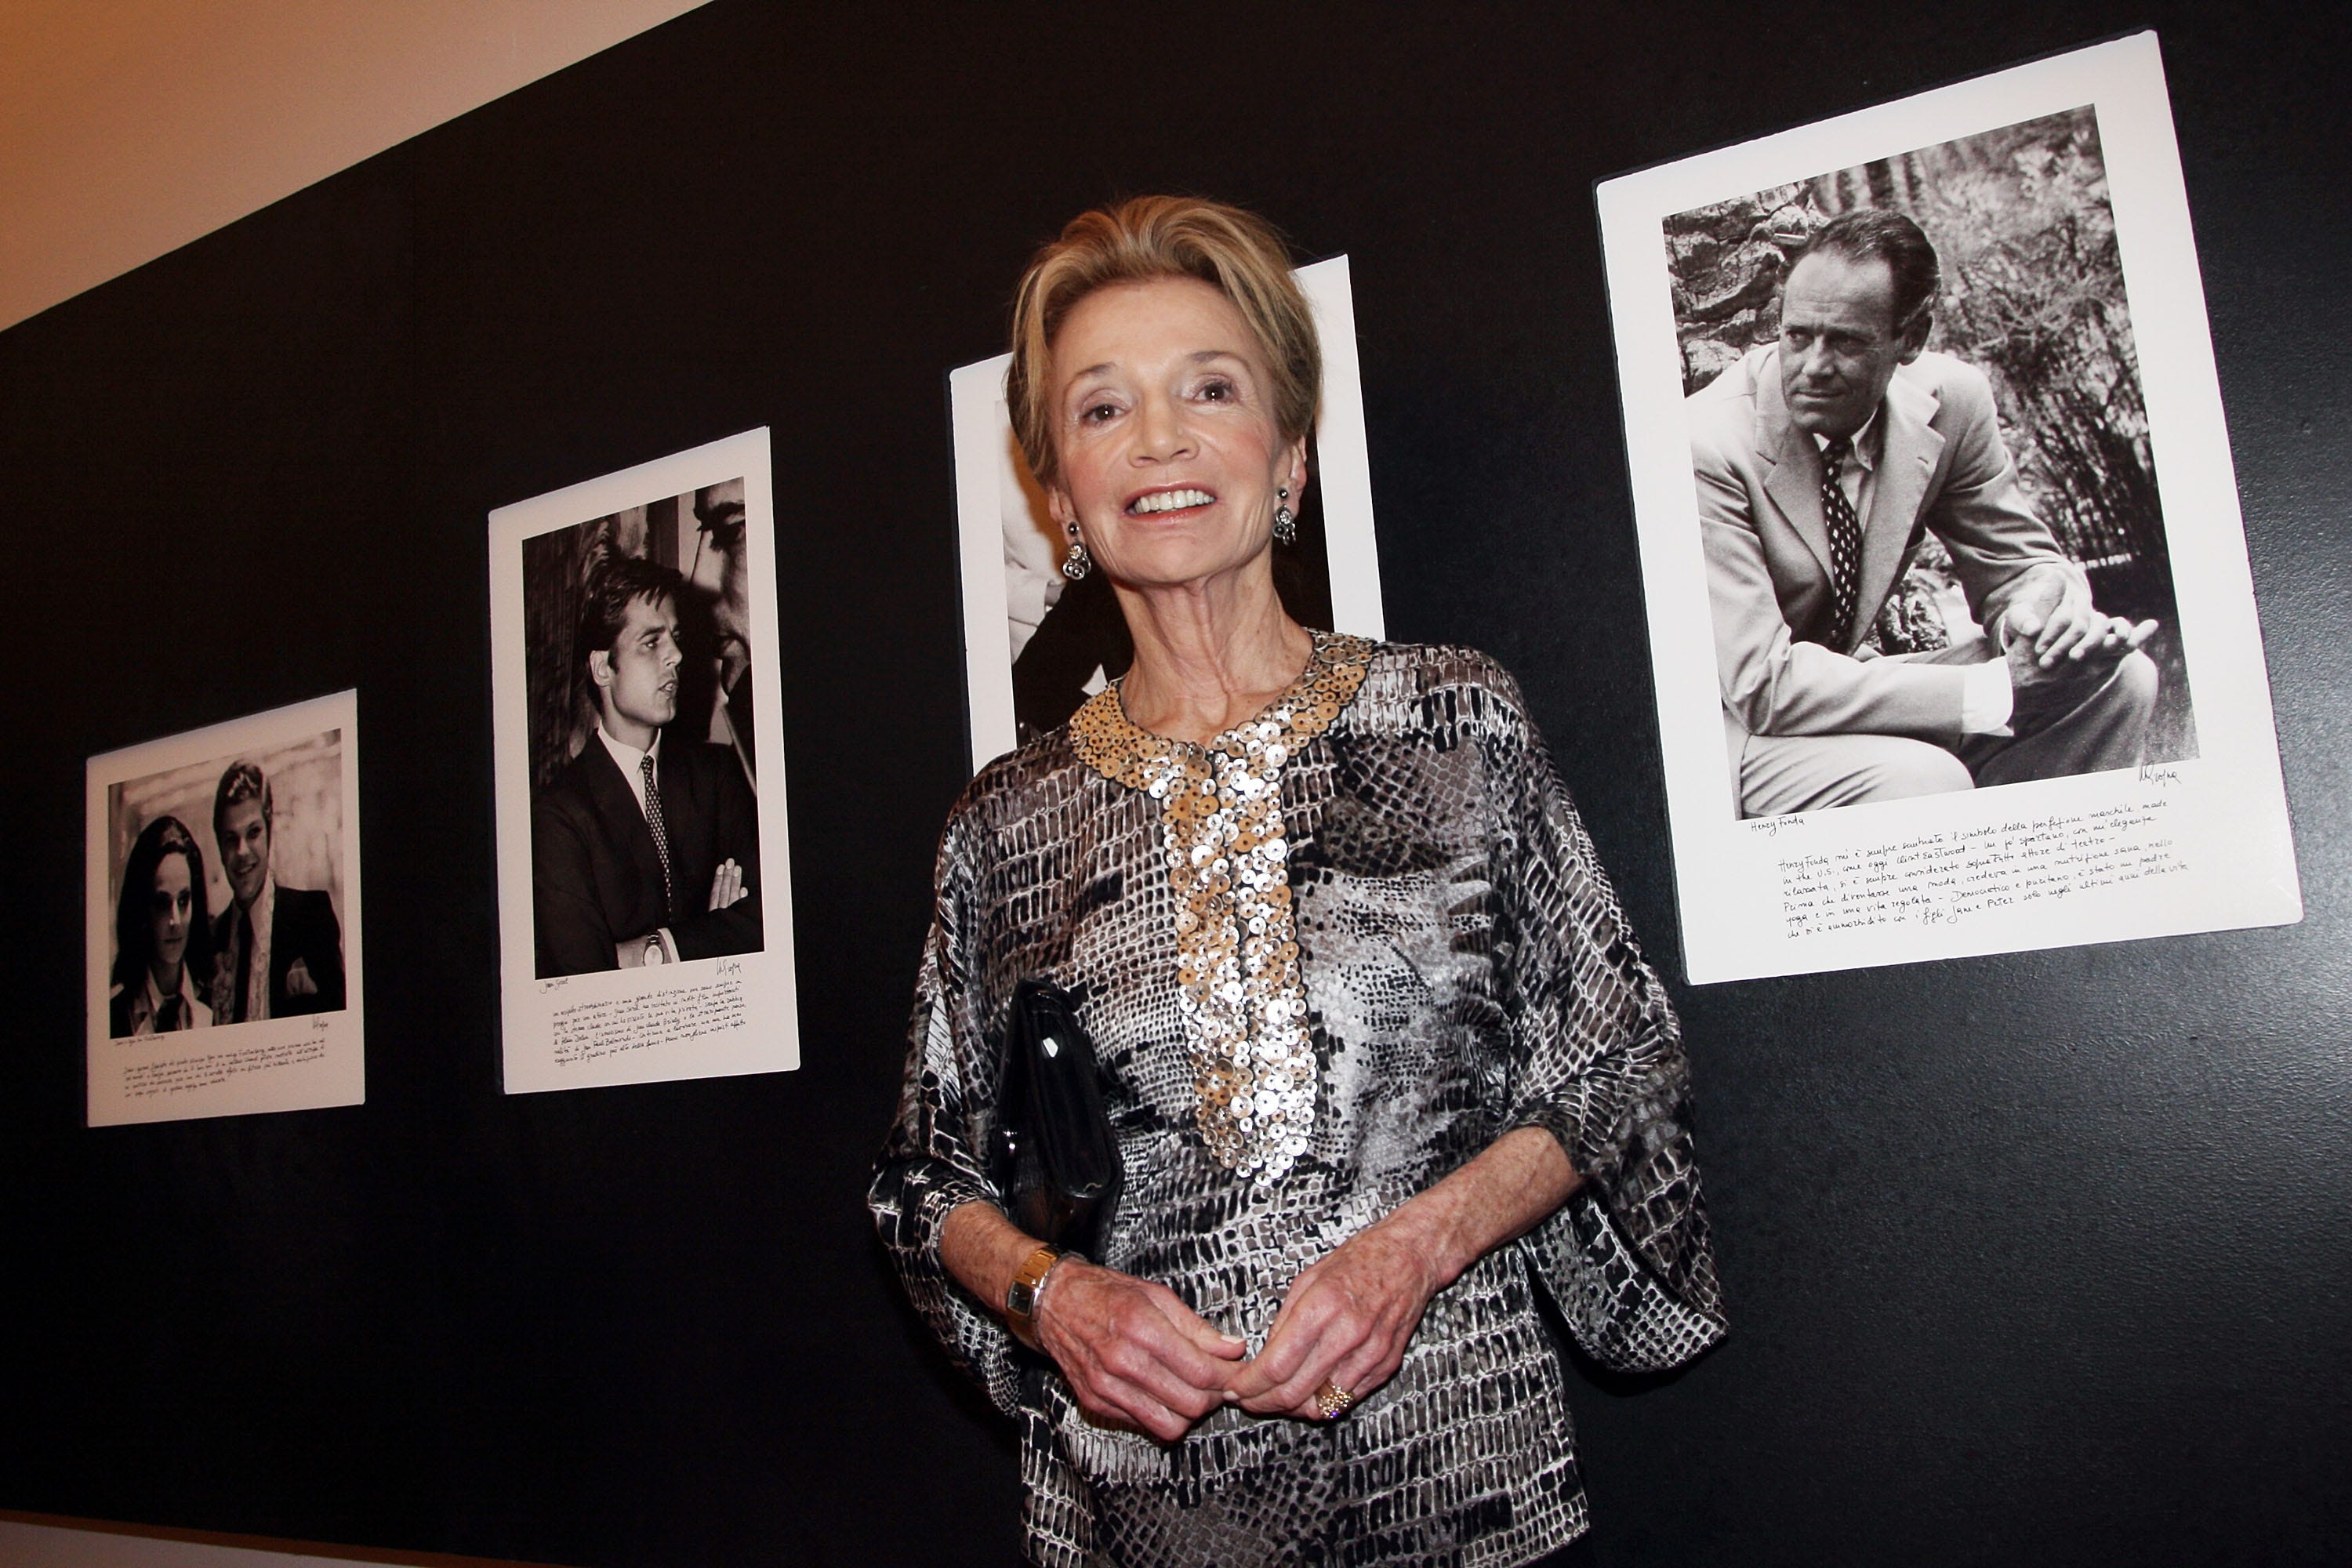 Lee Radziwill, the sister of Jacqueline Kennedy Onassis, attends Marina Cicogna Opening Exhibition at Villa Medici  on June 3, 2009 in Rome, Italy.